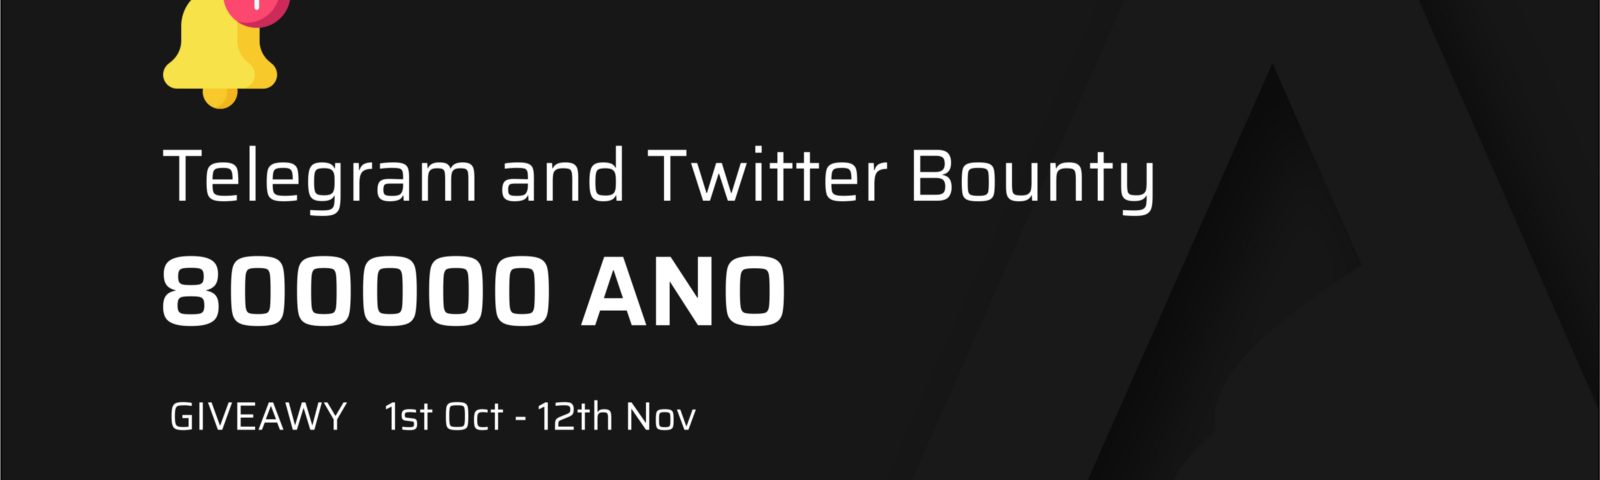 Arrano , The New Age decentralized exchange has announced its Telegtam and twitter bounty for 800000 ANO in giving out of 1%.